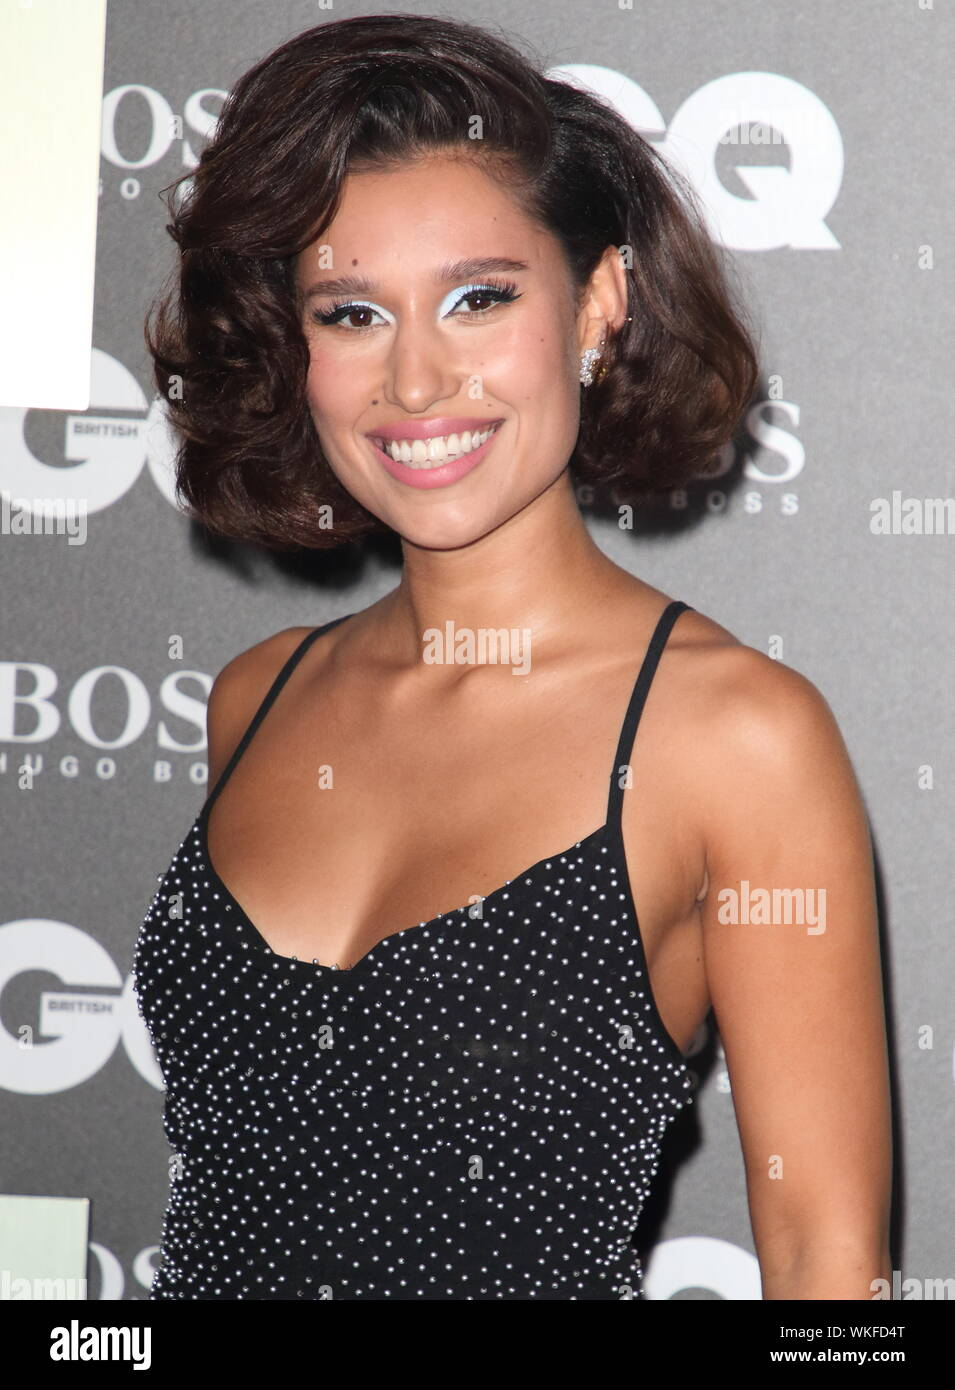 London, UK. 03rd Sep, 2019. Raye attends the GQ Men of the Year Awards held at the Tate Modern, Bankside in London. Credit: SOPA Images Limited/Alamy Live News - Stock Photo